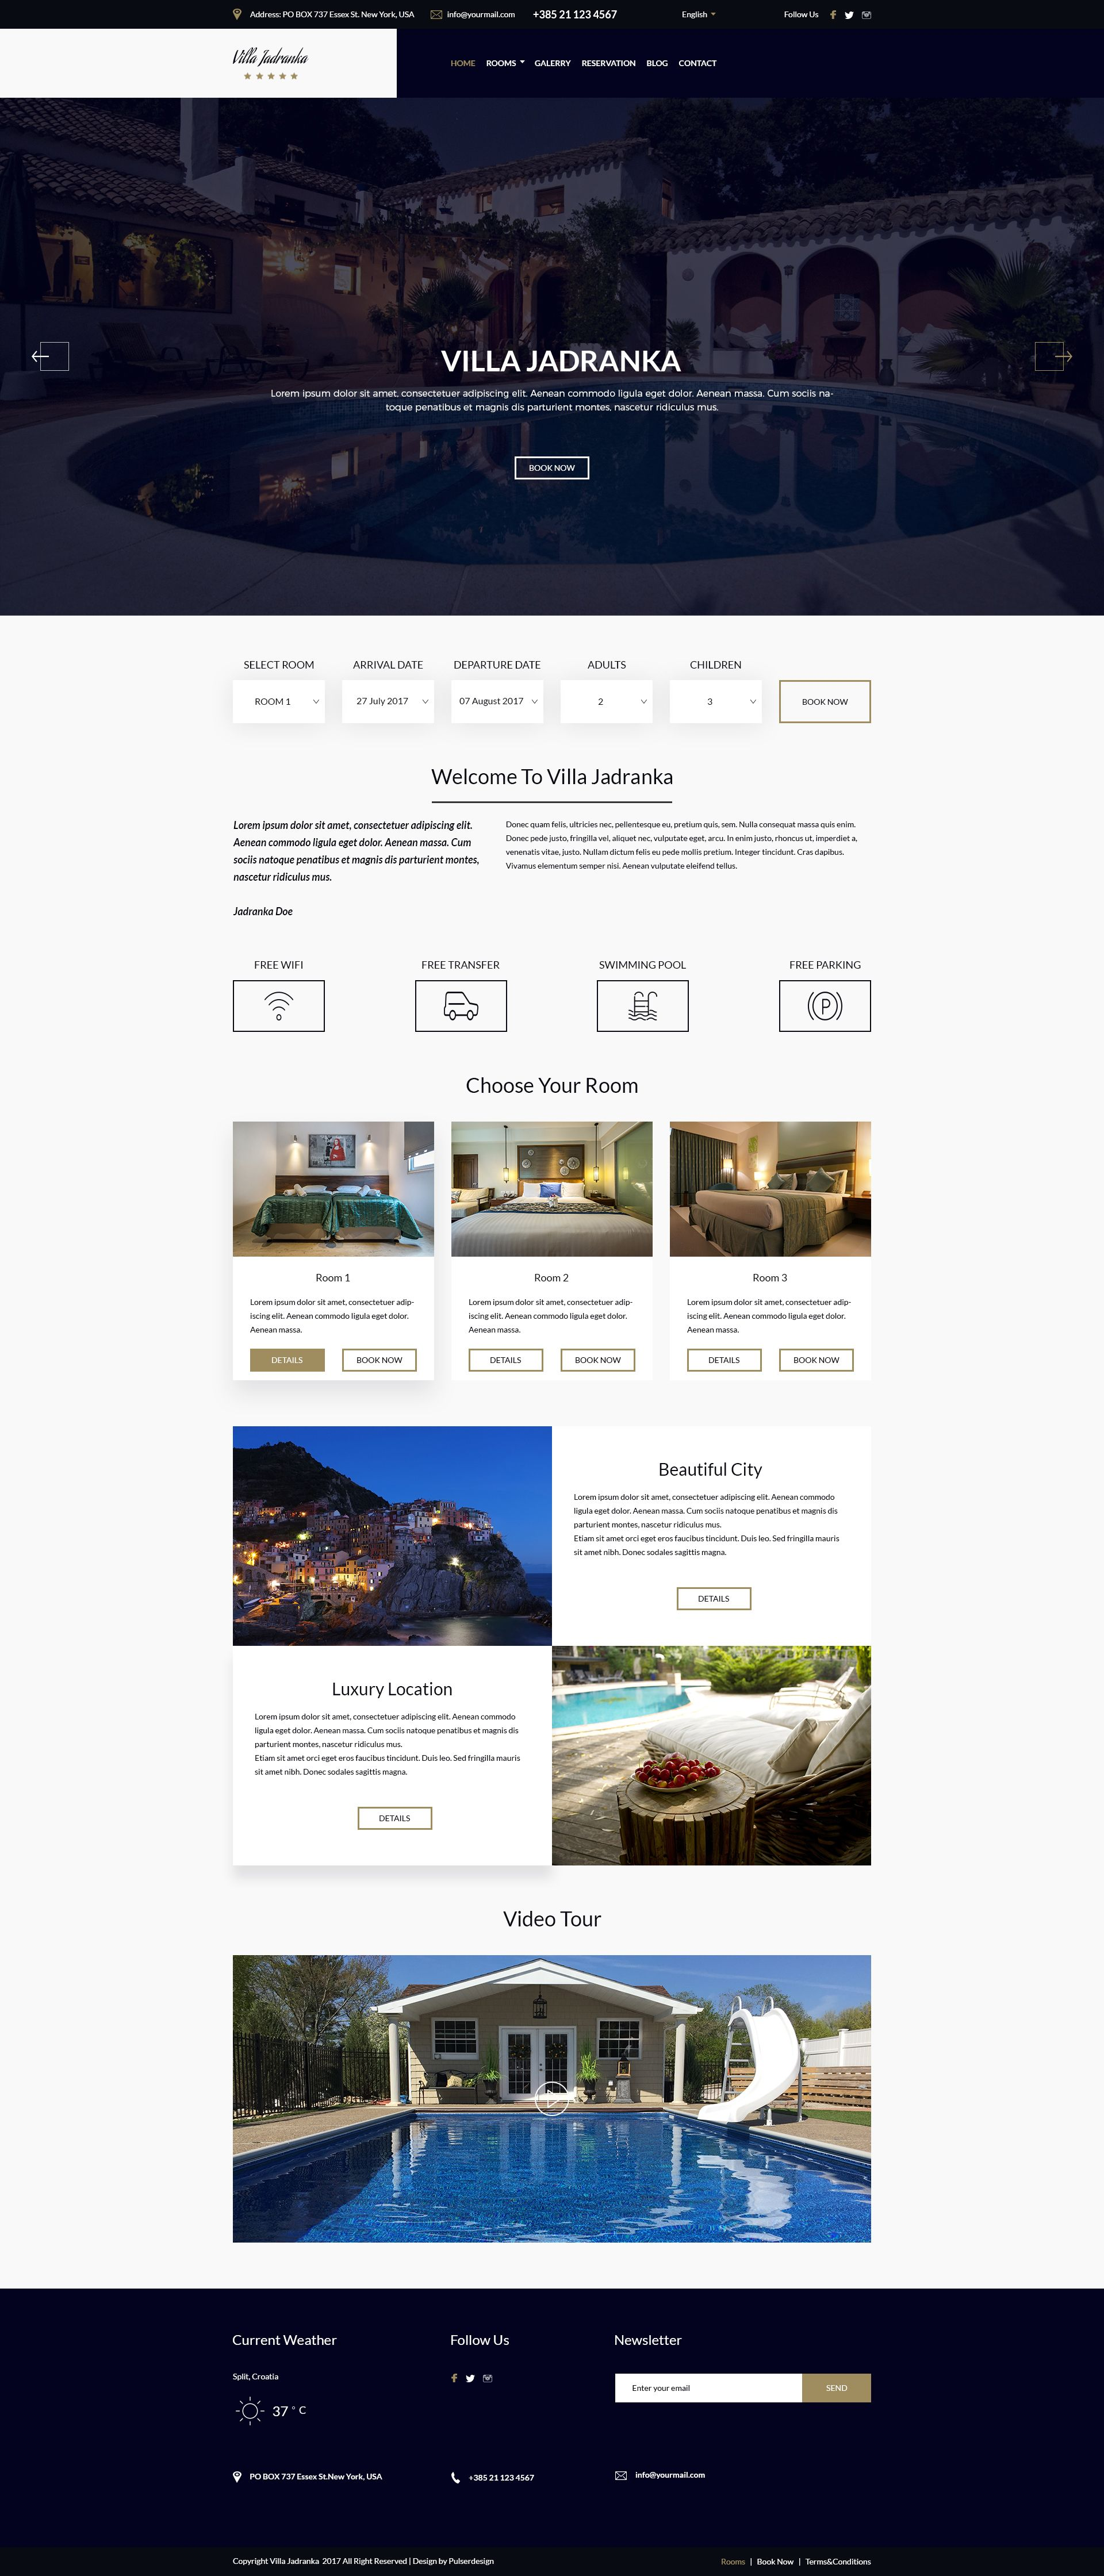 Villa Jadranka - Website PSD Template Screenshot 1